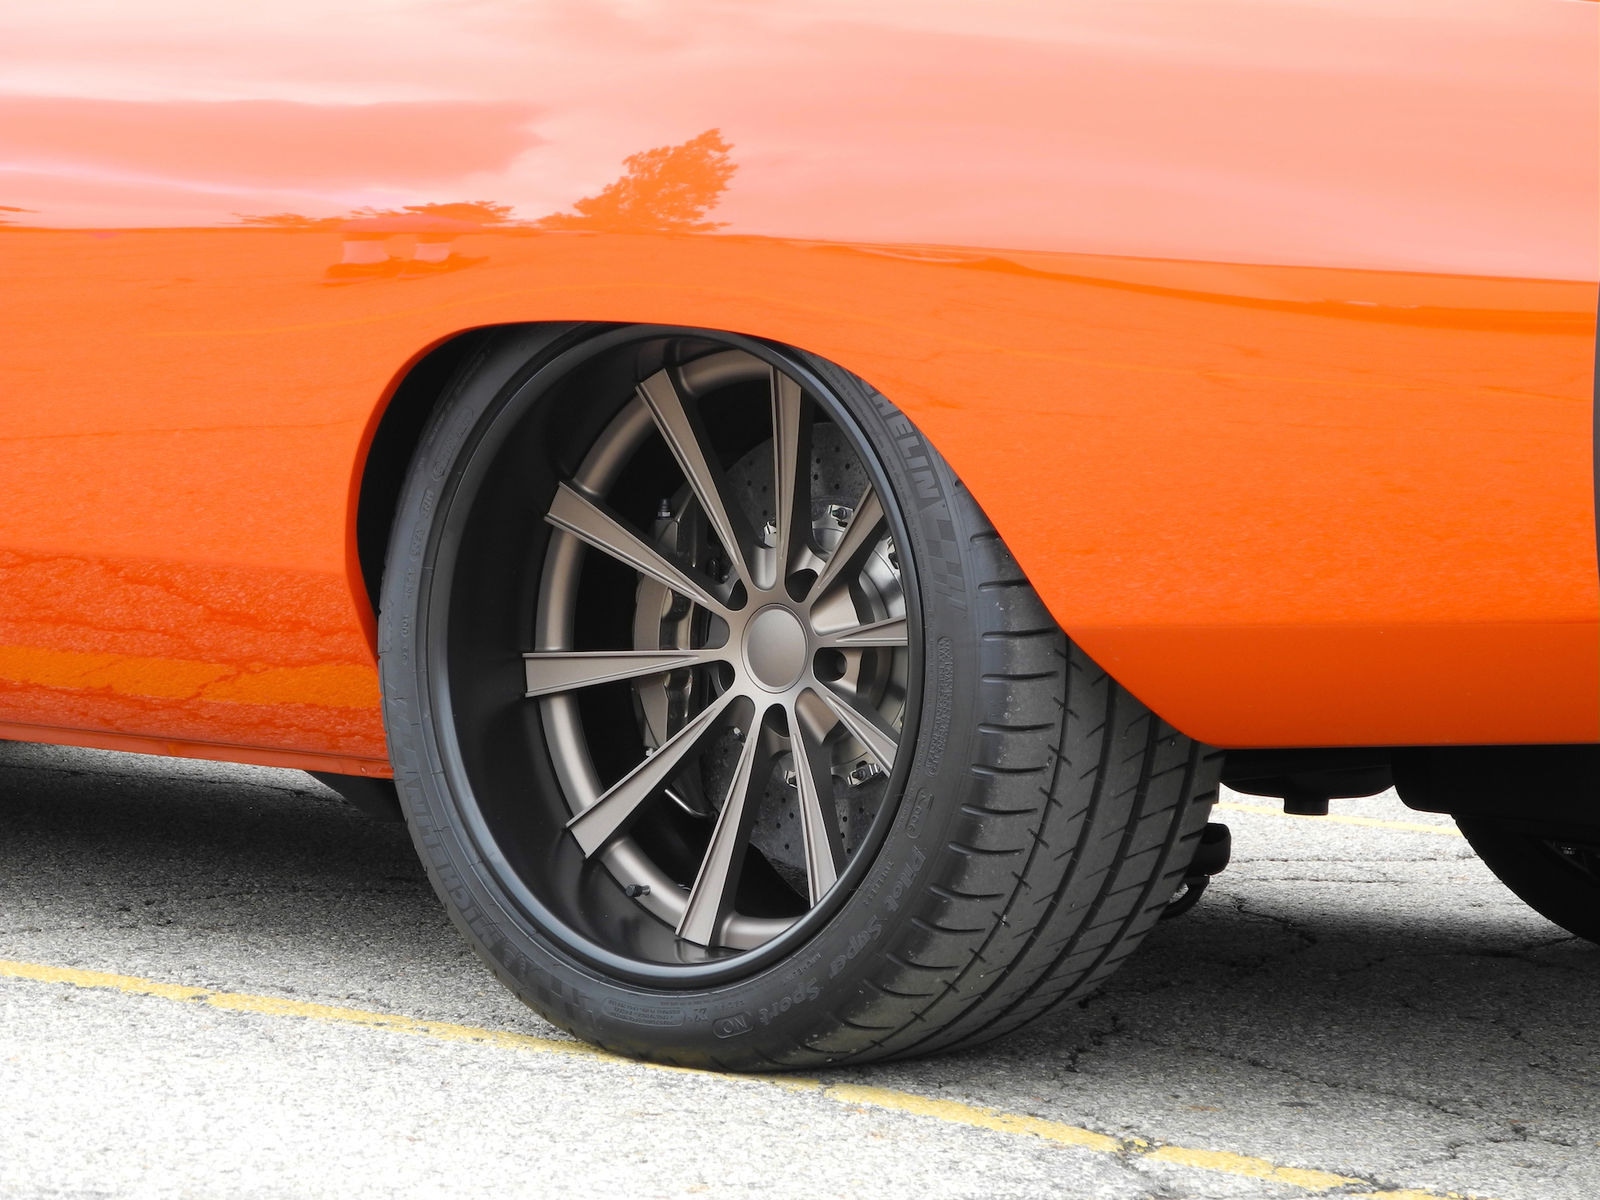 1969 Dodge Charger | Moe's Charger on Grip Equipped Dropkick Wheels